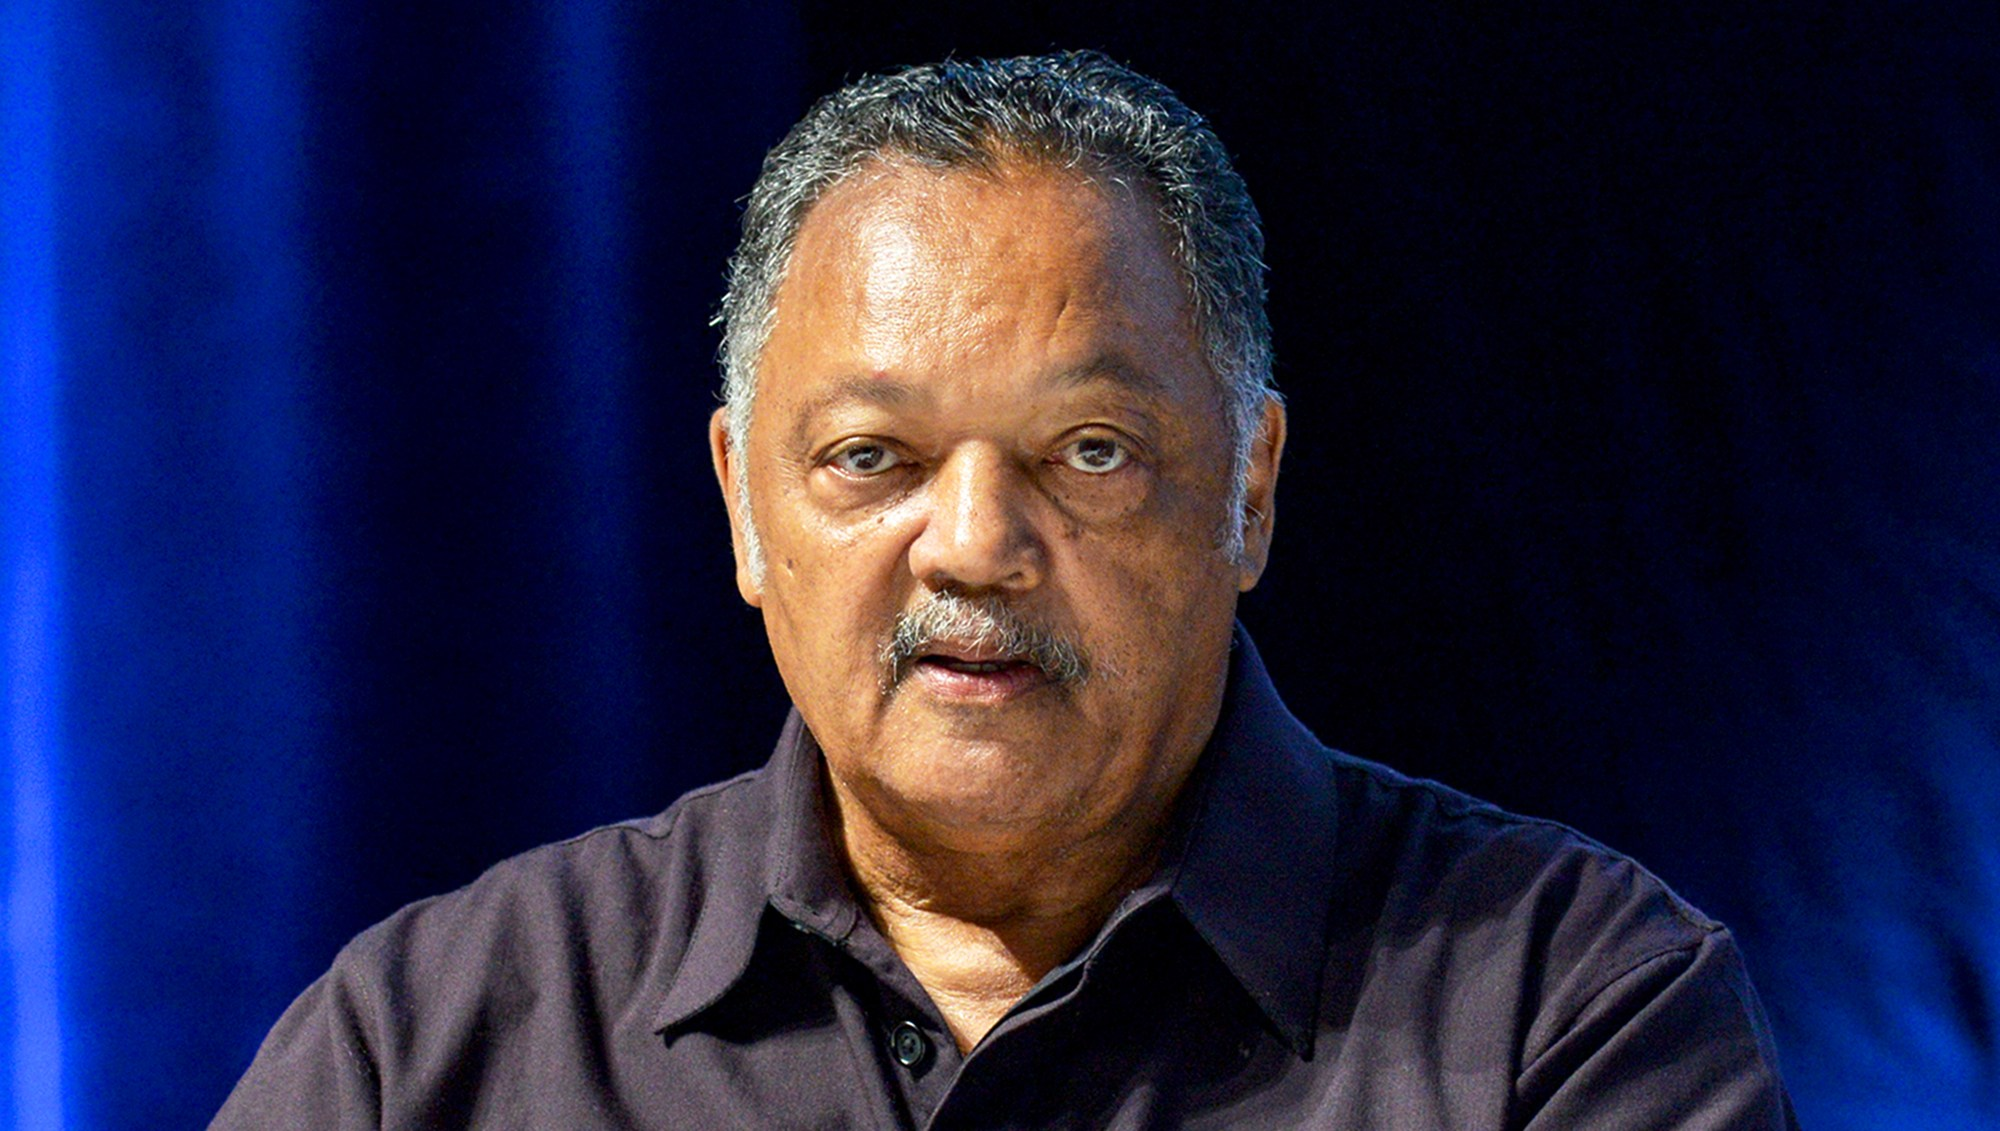 Jesse Jackson attends the Cannes Lions Festival 2017 on June 20, 2017 in Cannes, France.